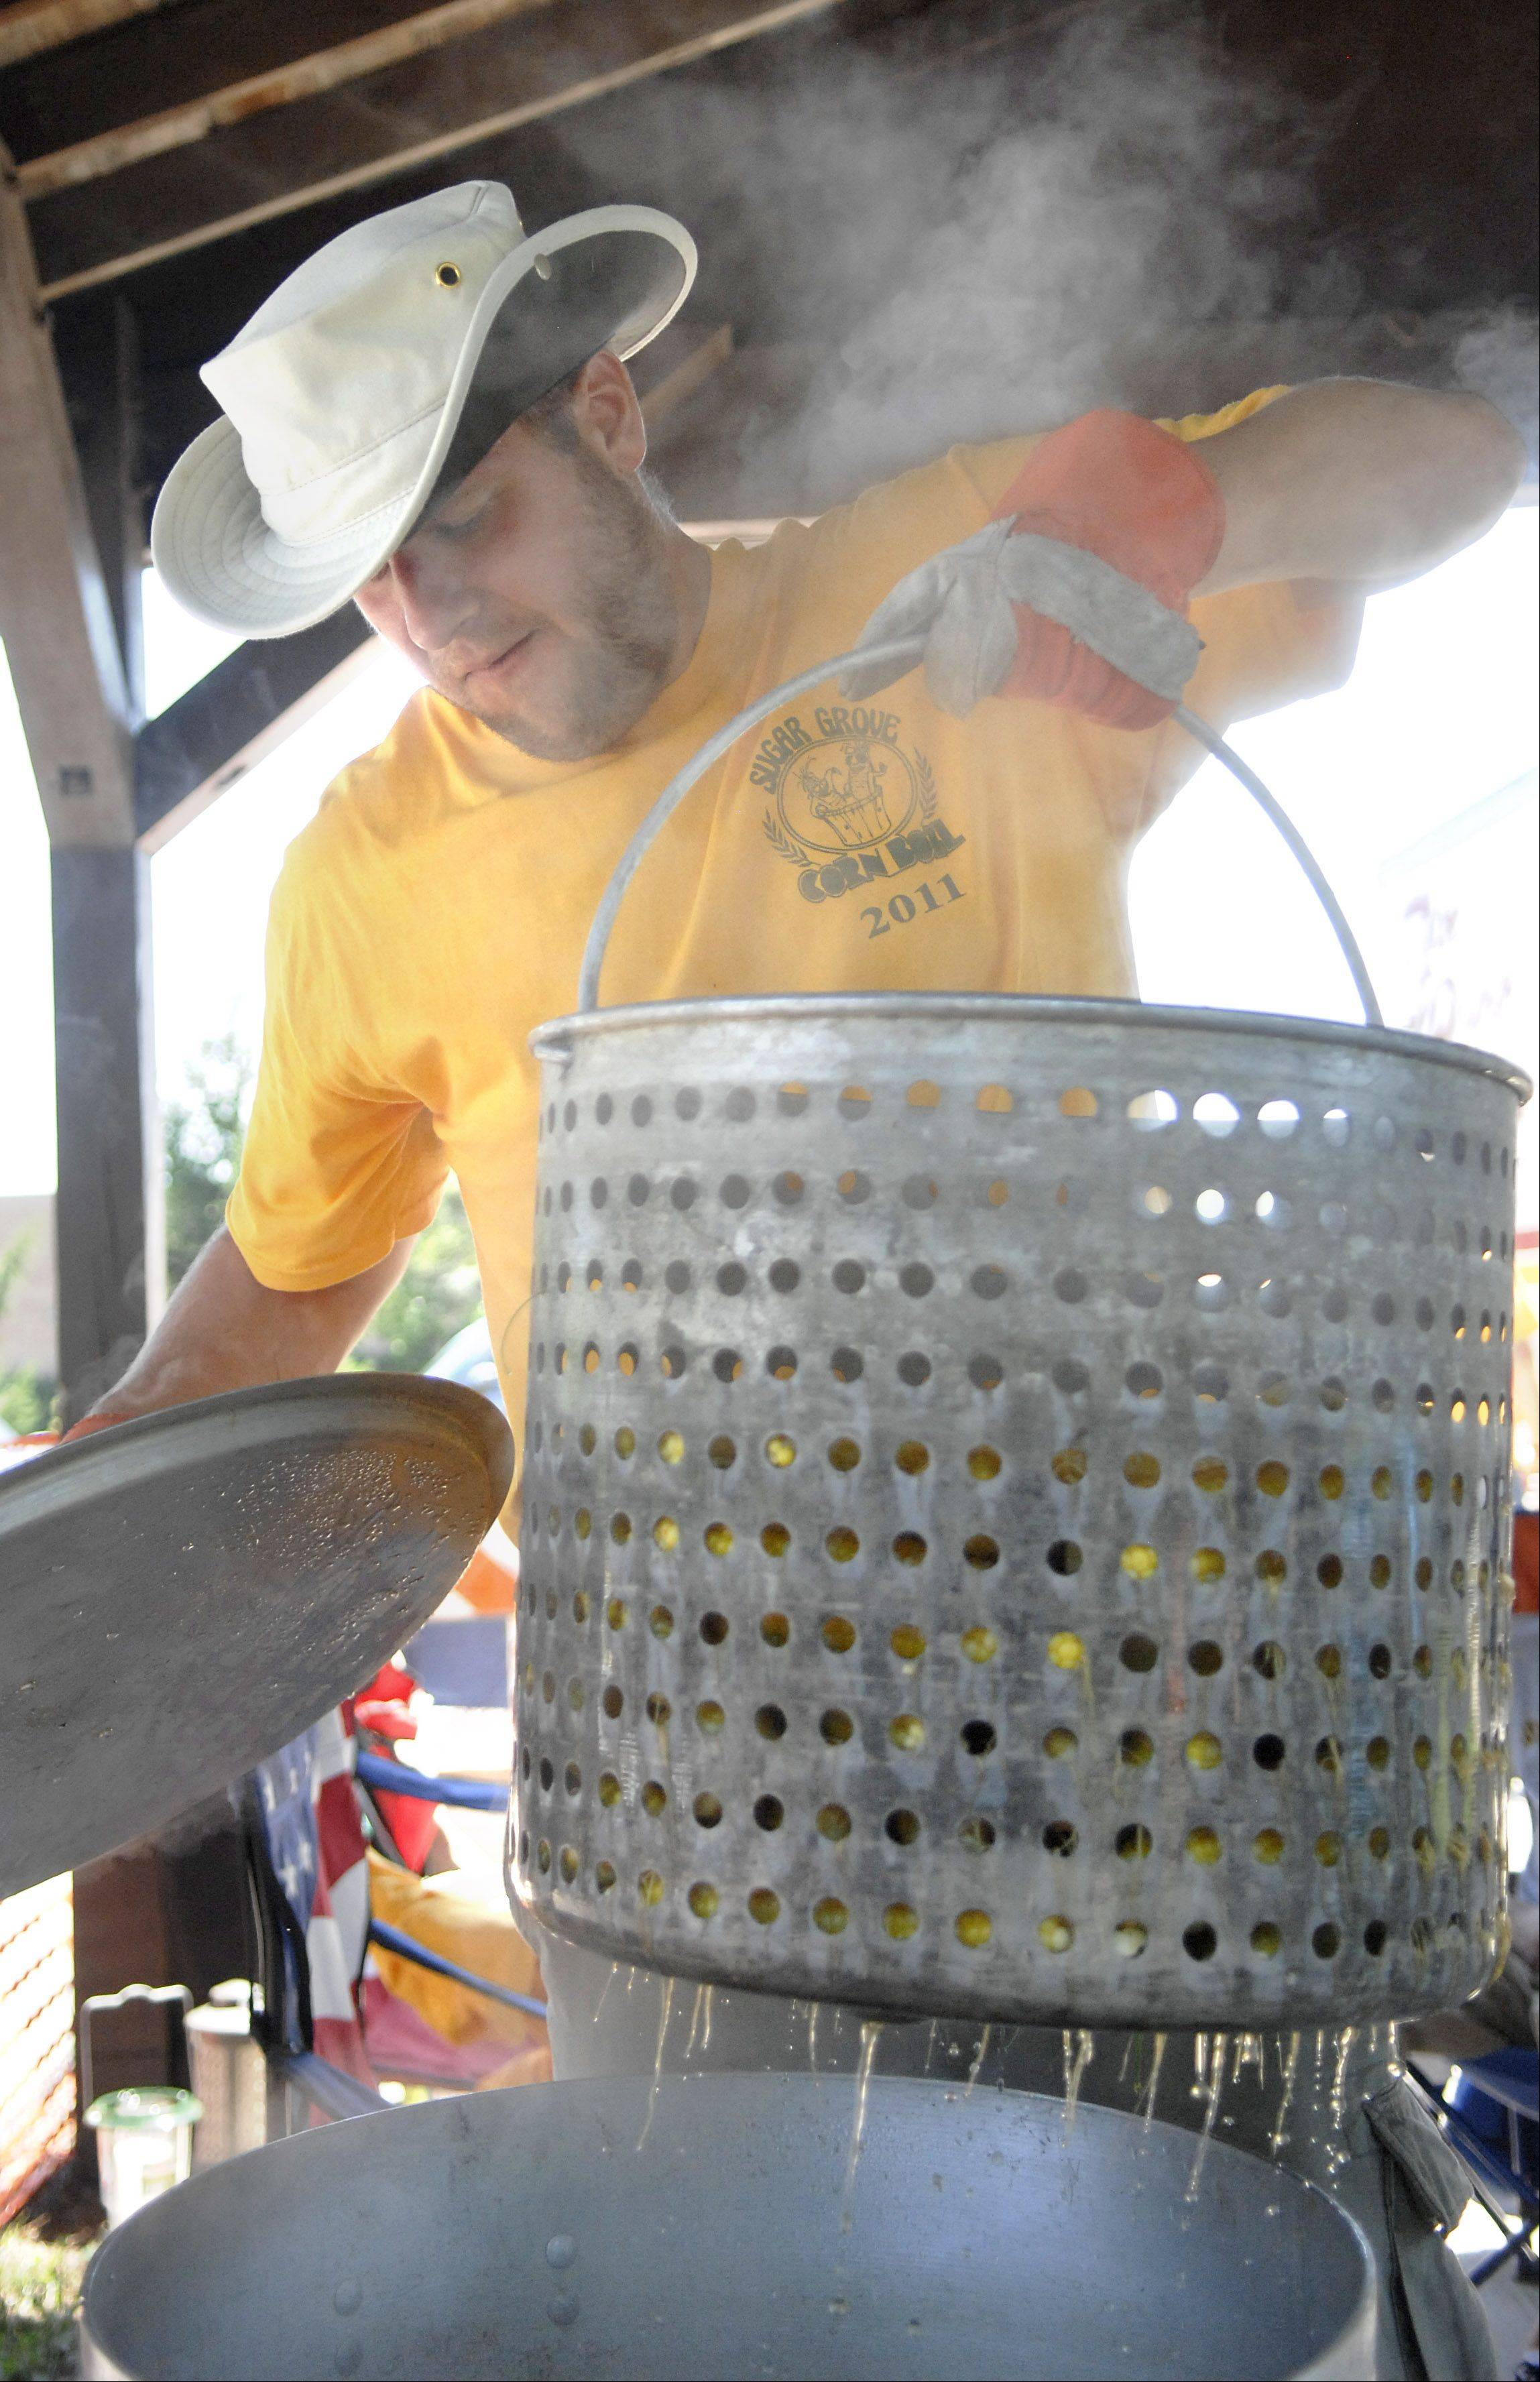 Andrew Drabik of Aurora pulls out a cooked batch of sweet corn at the Sugar Grove Corn Boil in Volunteer Park on Saturday, July 30. This is Drabik's second year volunteering for the Boil. Each pot holds about 50 ears and takes 10 minutes to cook. 11,000 ears of corn will be made over the three day festival.